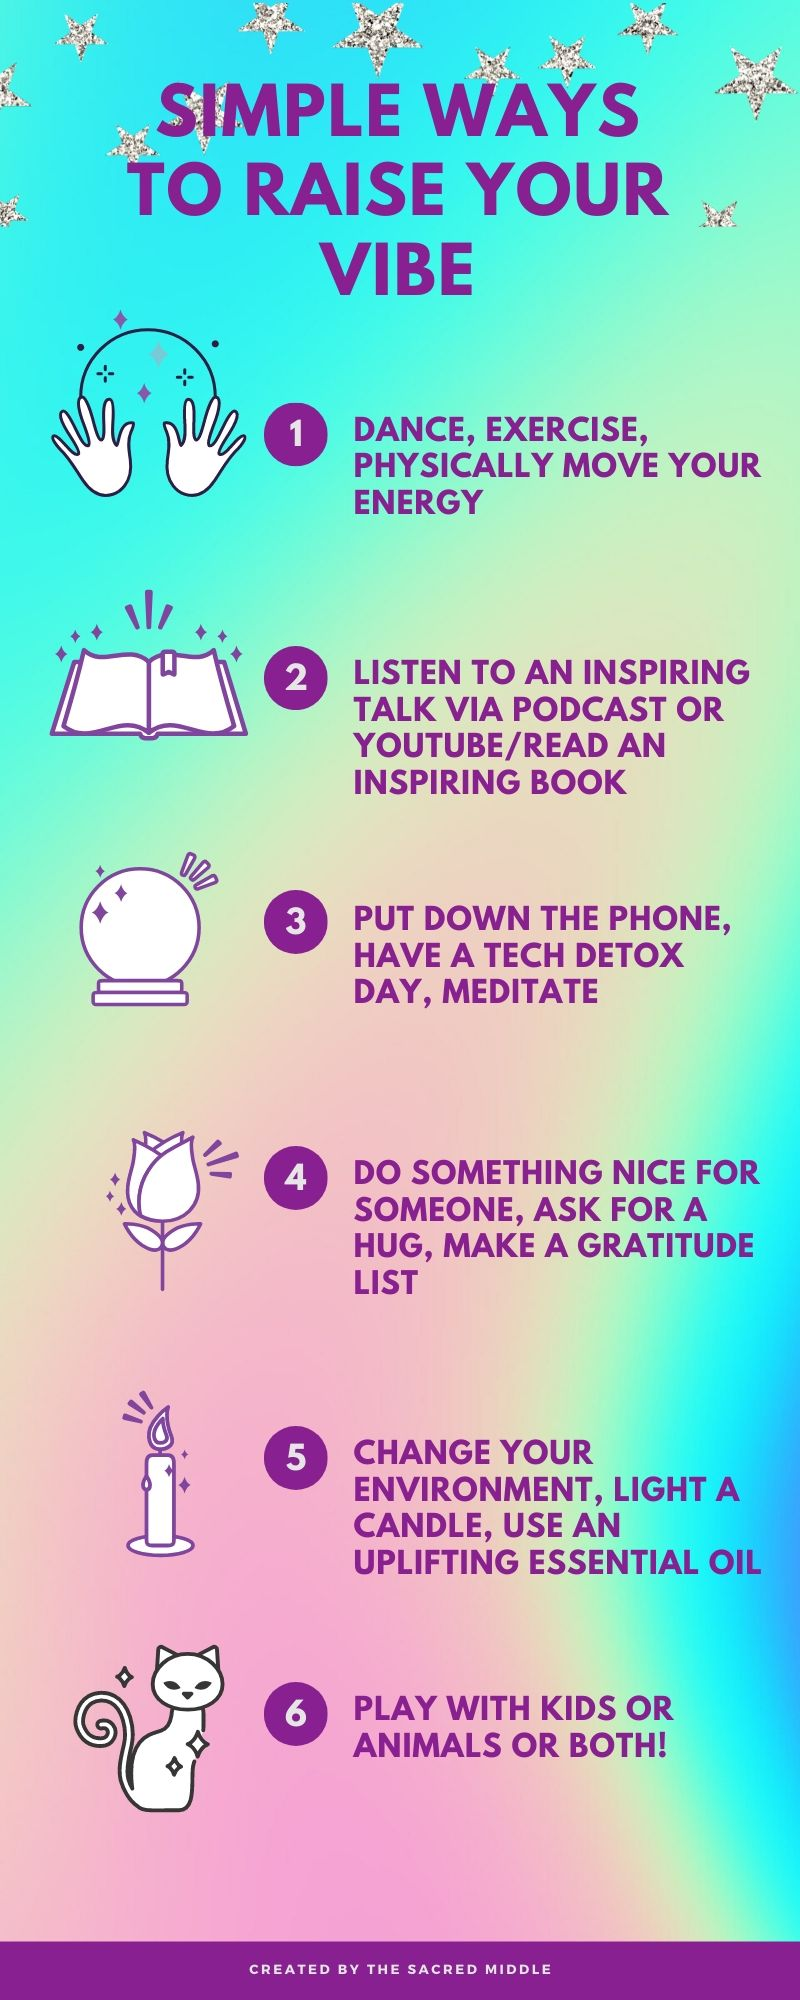 Simple Ways to Raise Your Vibe